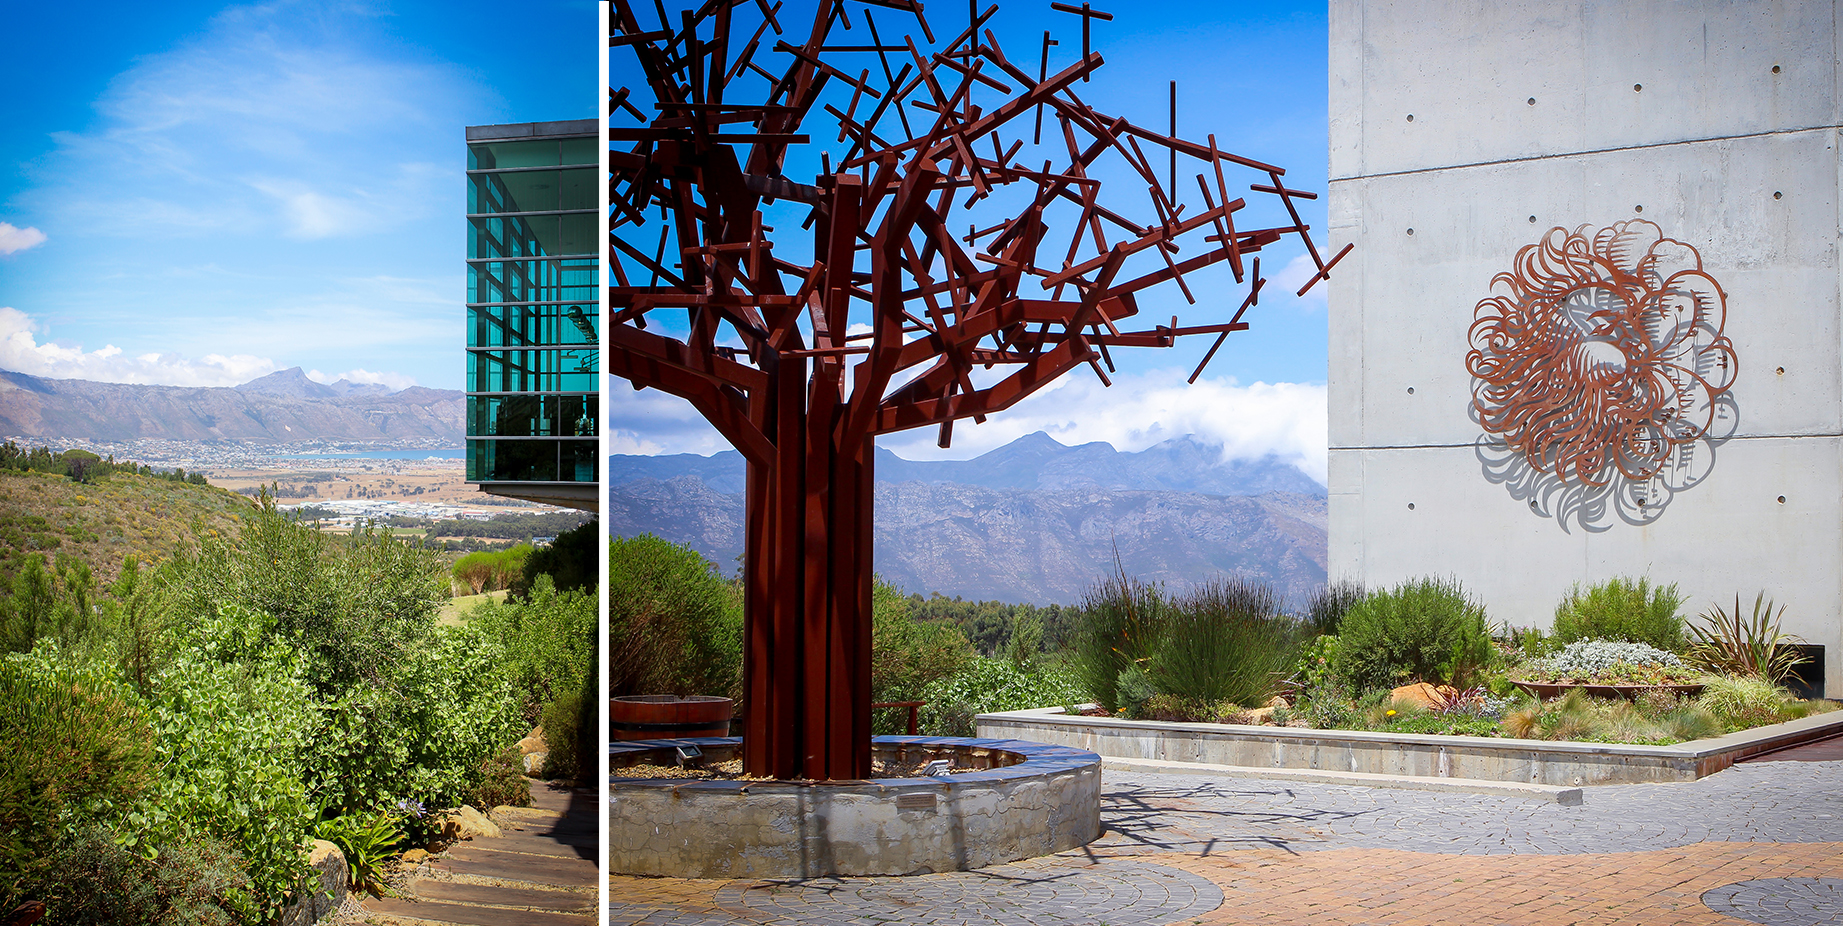 The awards ceremony was held at The Restaurant at Waterkloof Wine Estate in the picturesque Somerset West.